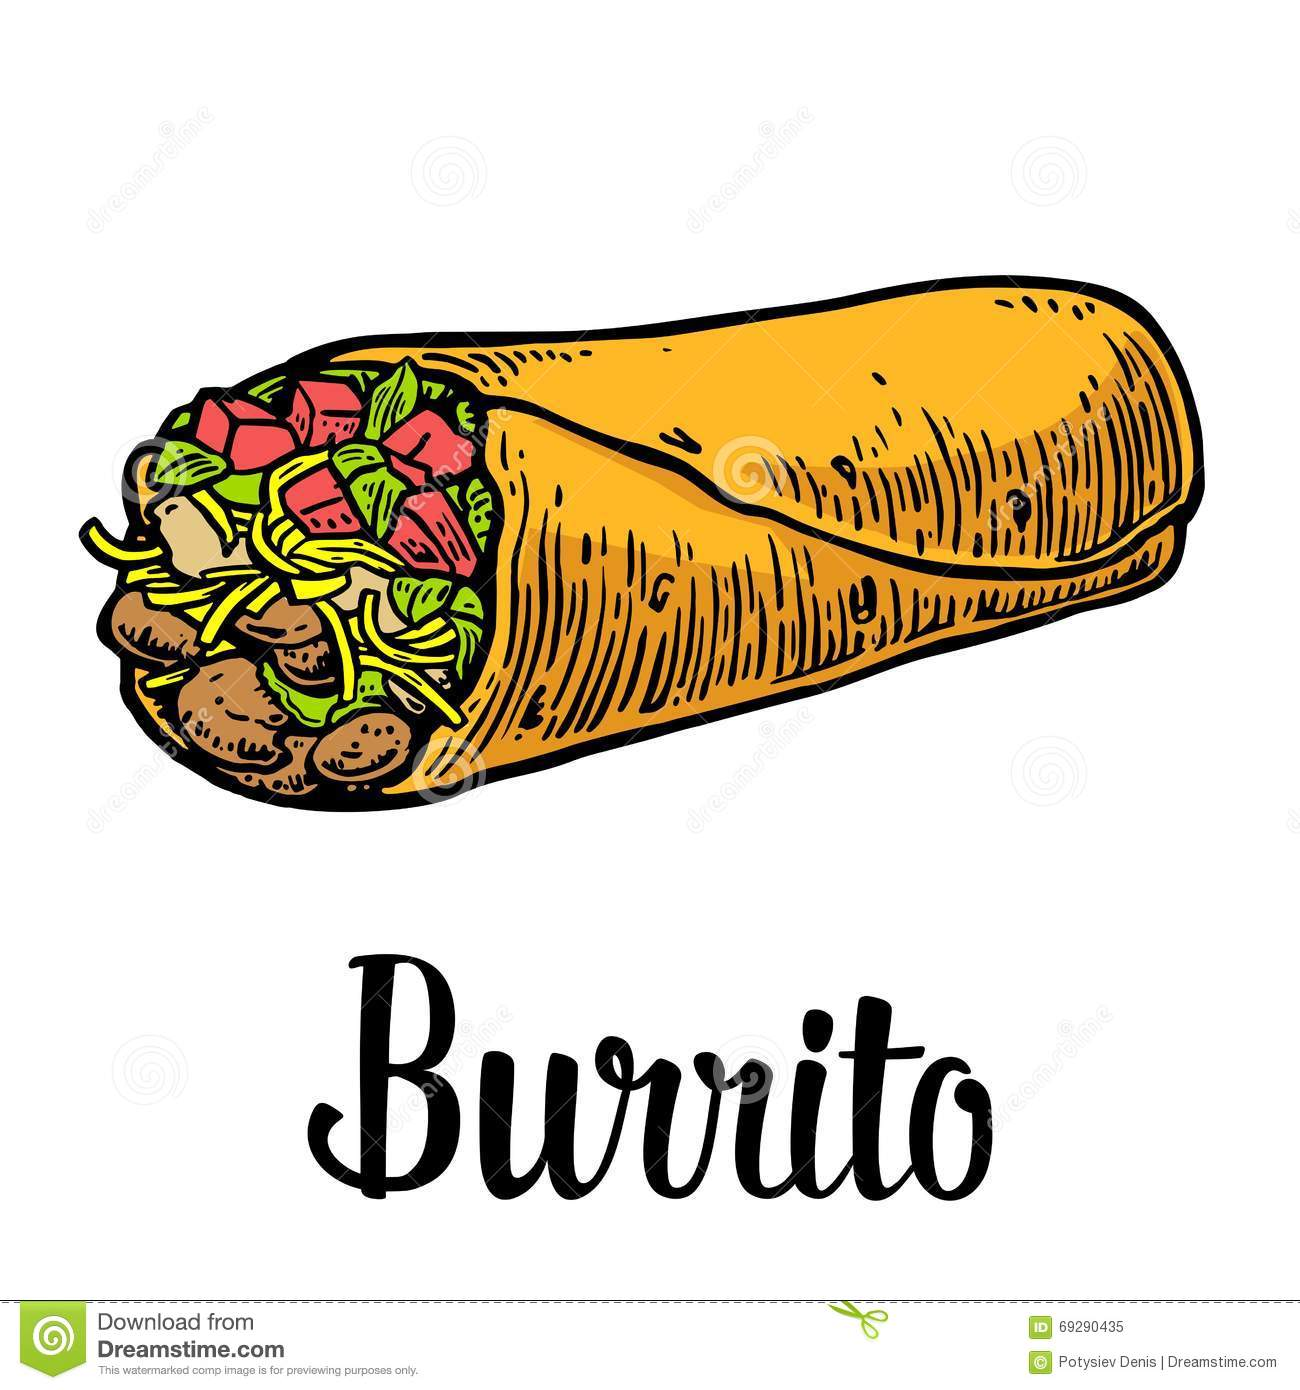 Burrito business plan